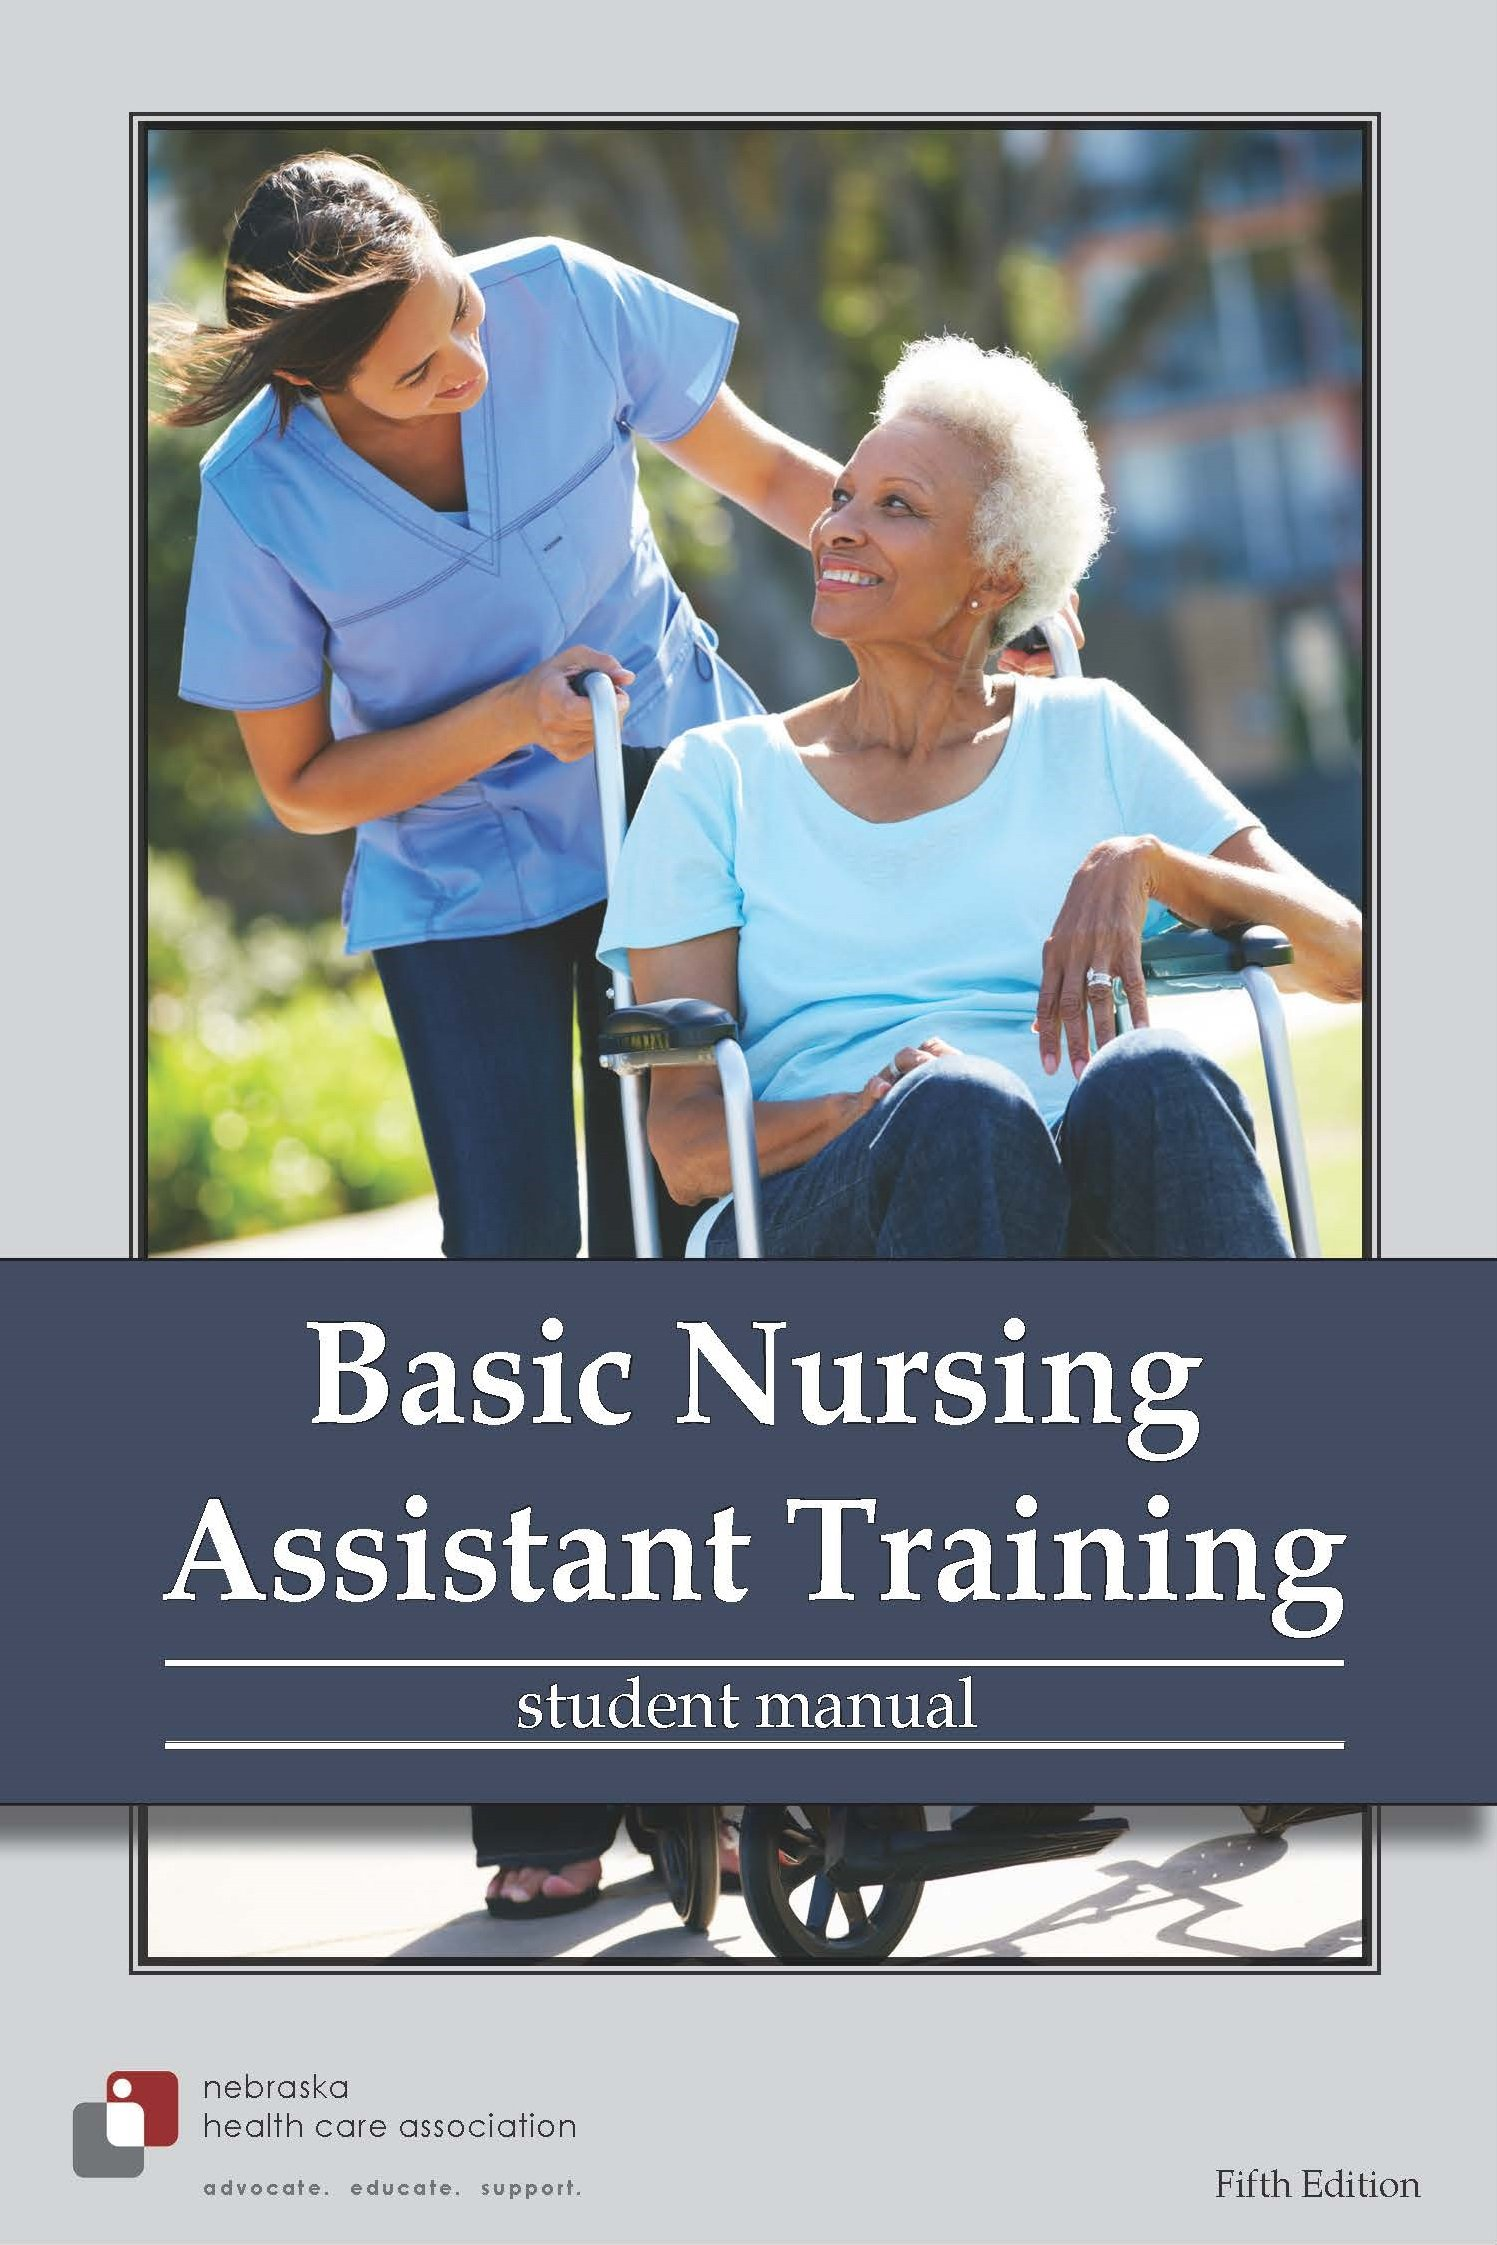 Basic Nursing Assistant Training Student Manual and Workbook Fifth Edition